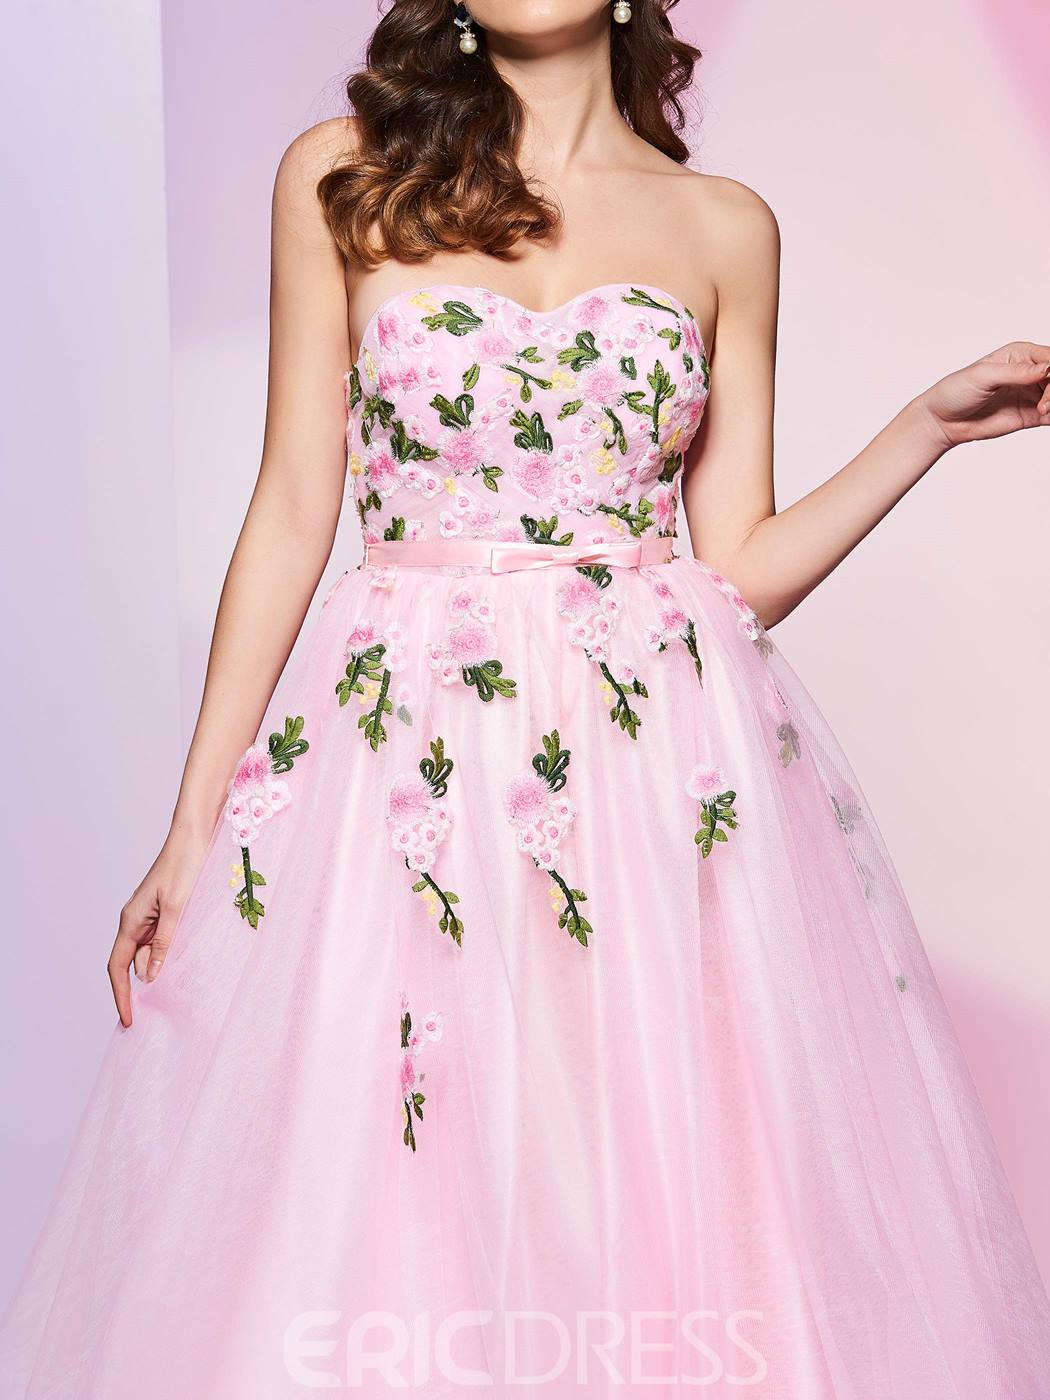 Ericdress Delicate A Line Sweetheart Embroidery AppliqueeSleeveless Prom Dress